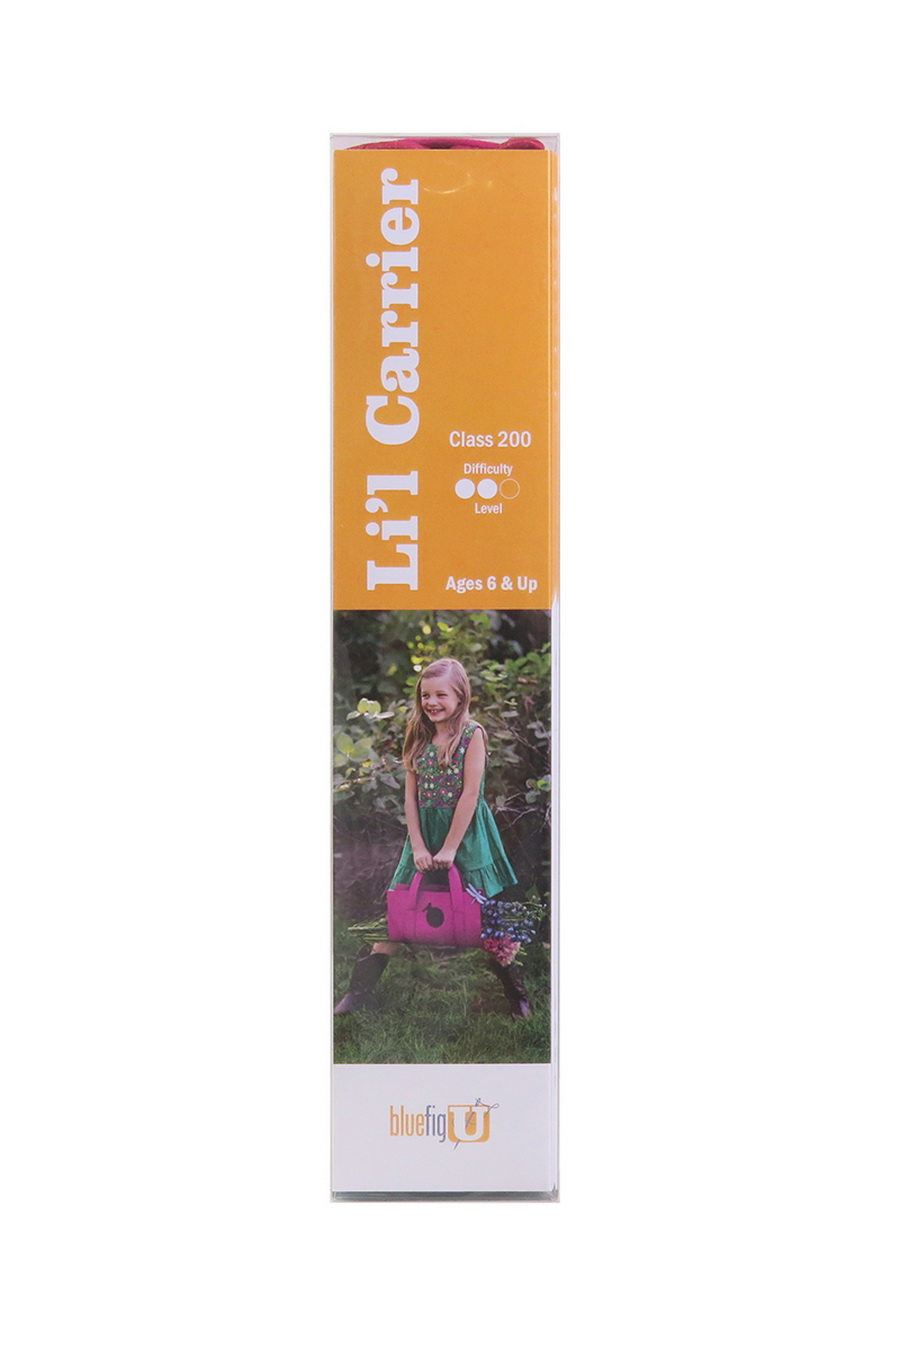 Bluefig University Learn to Sew Kit - Lil Carrier Class 200